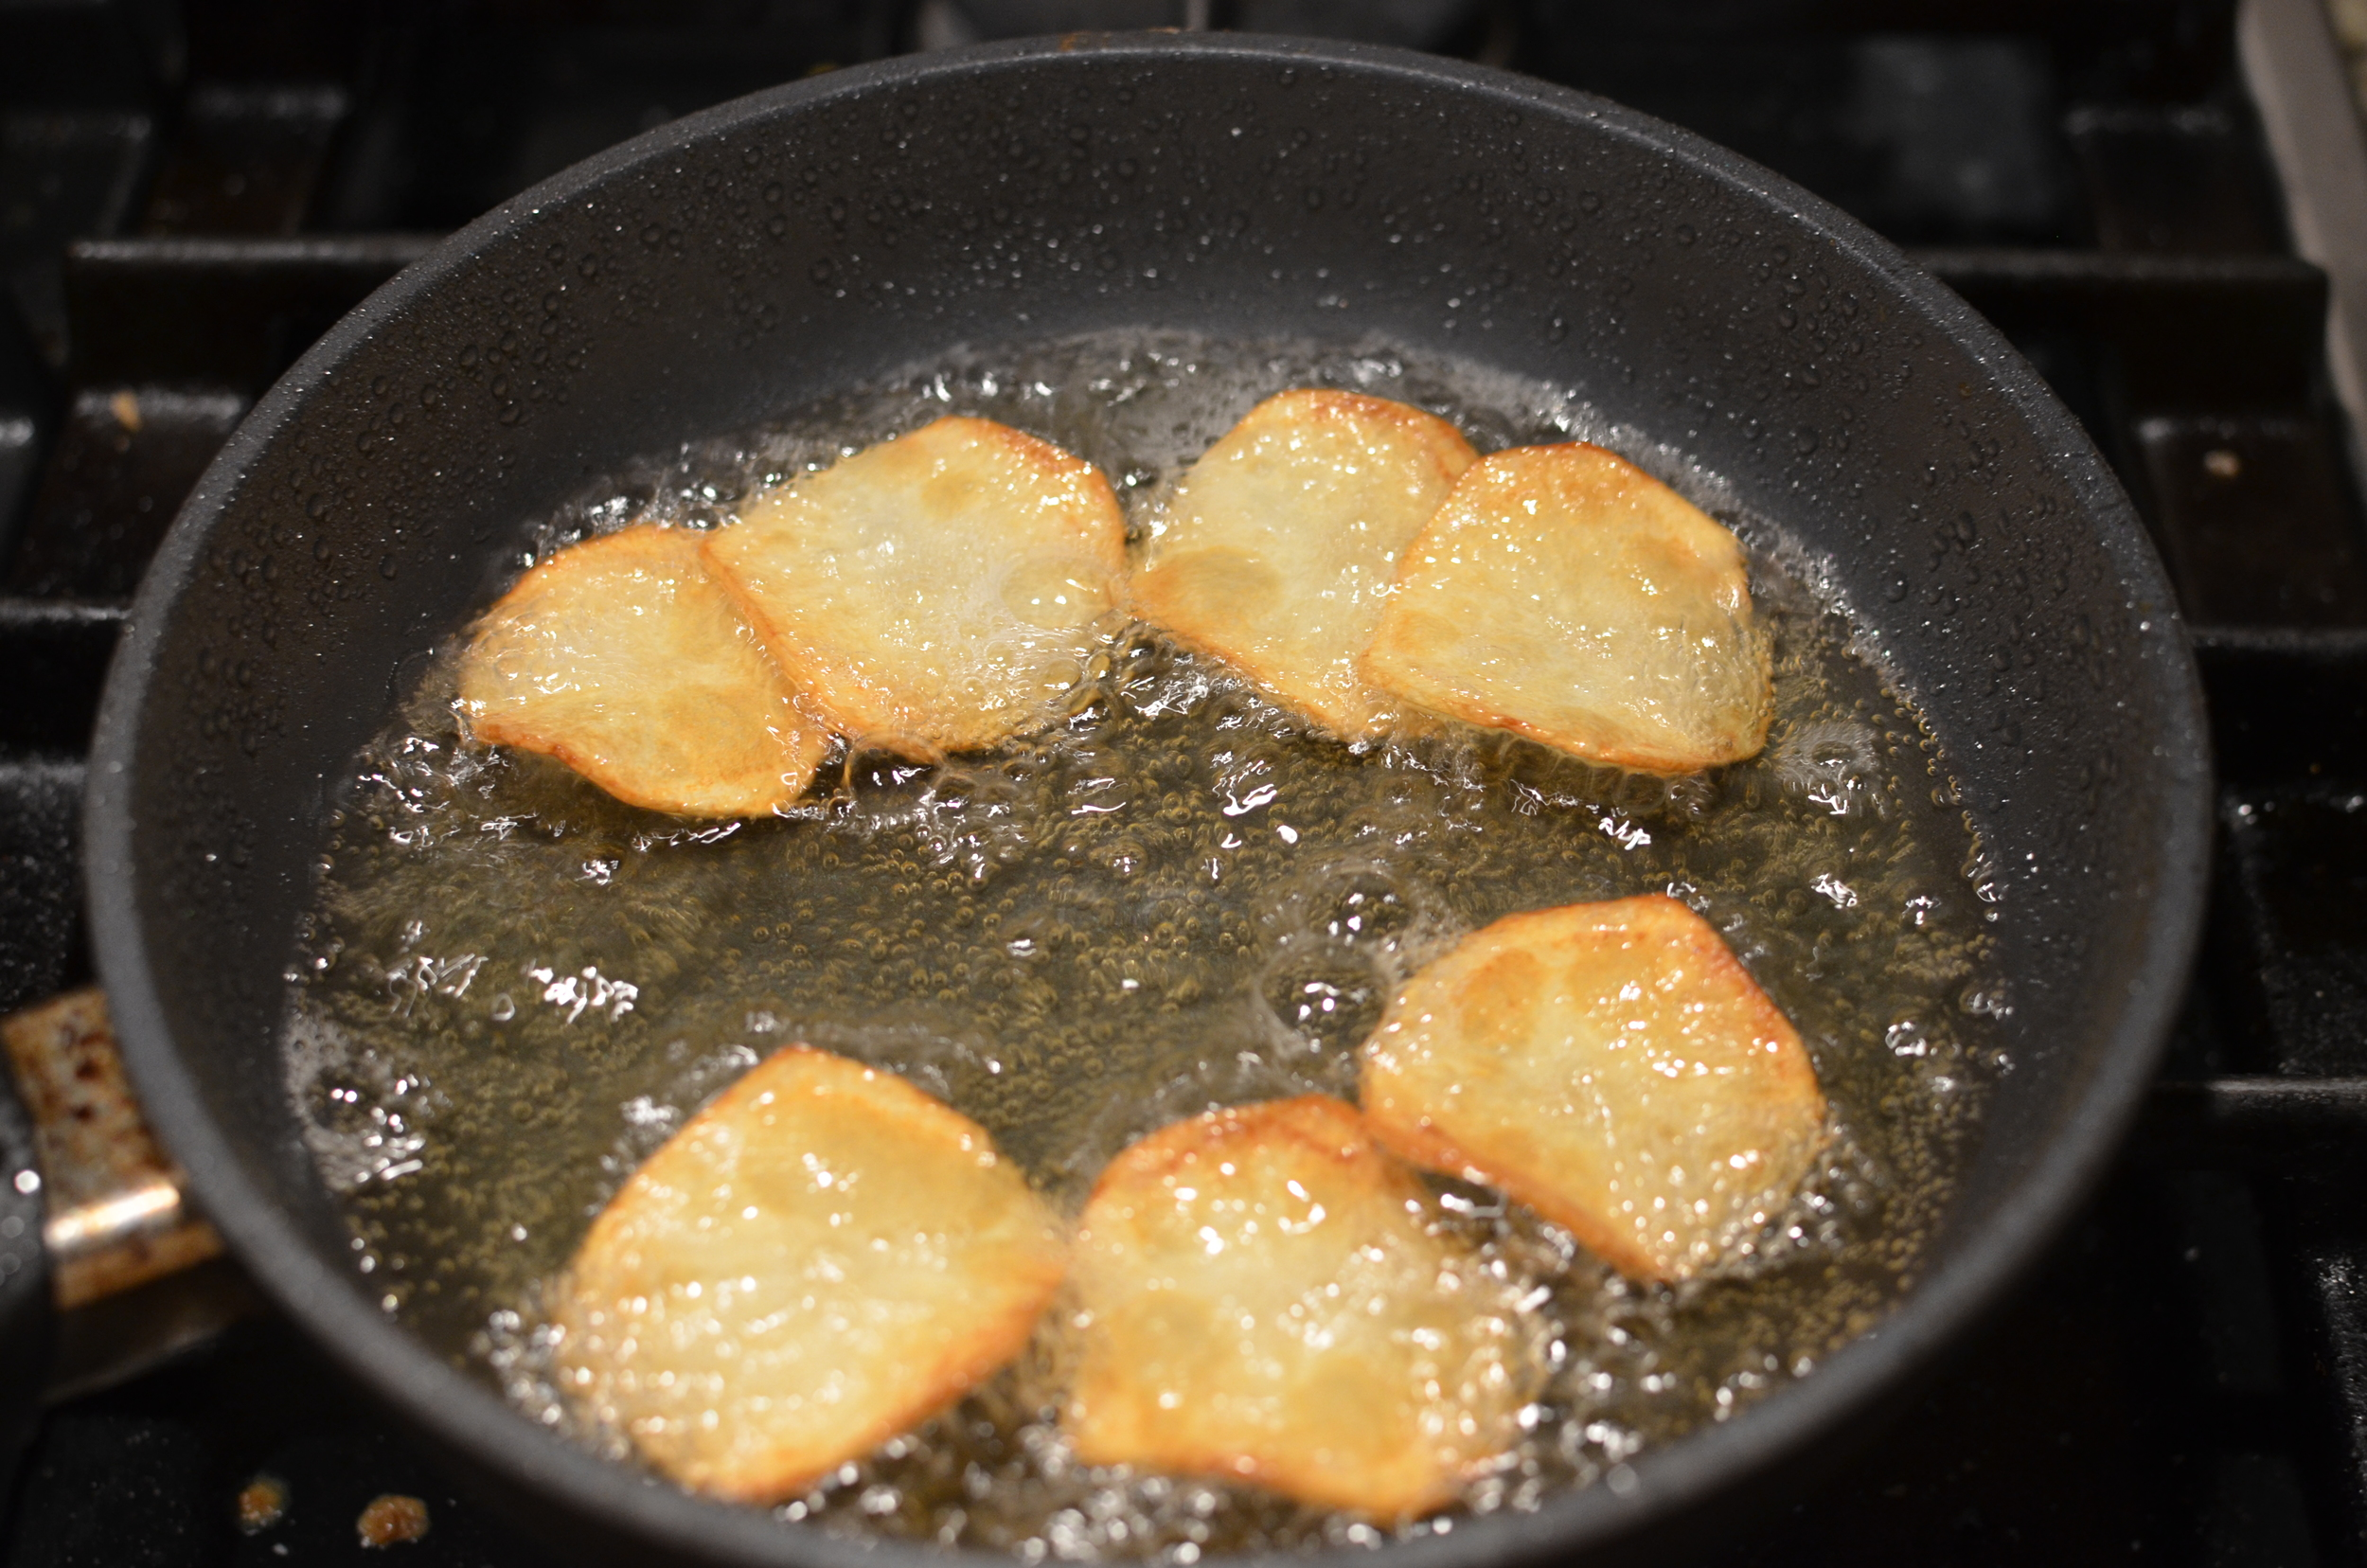 Continue frying on second side until they are nice and toasty all over.  Don't let them go too long - they'll darken a bit as they cool.